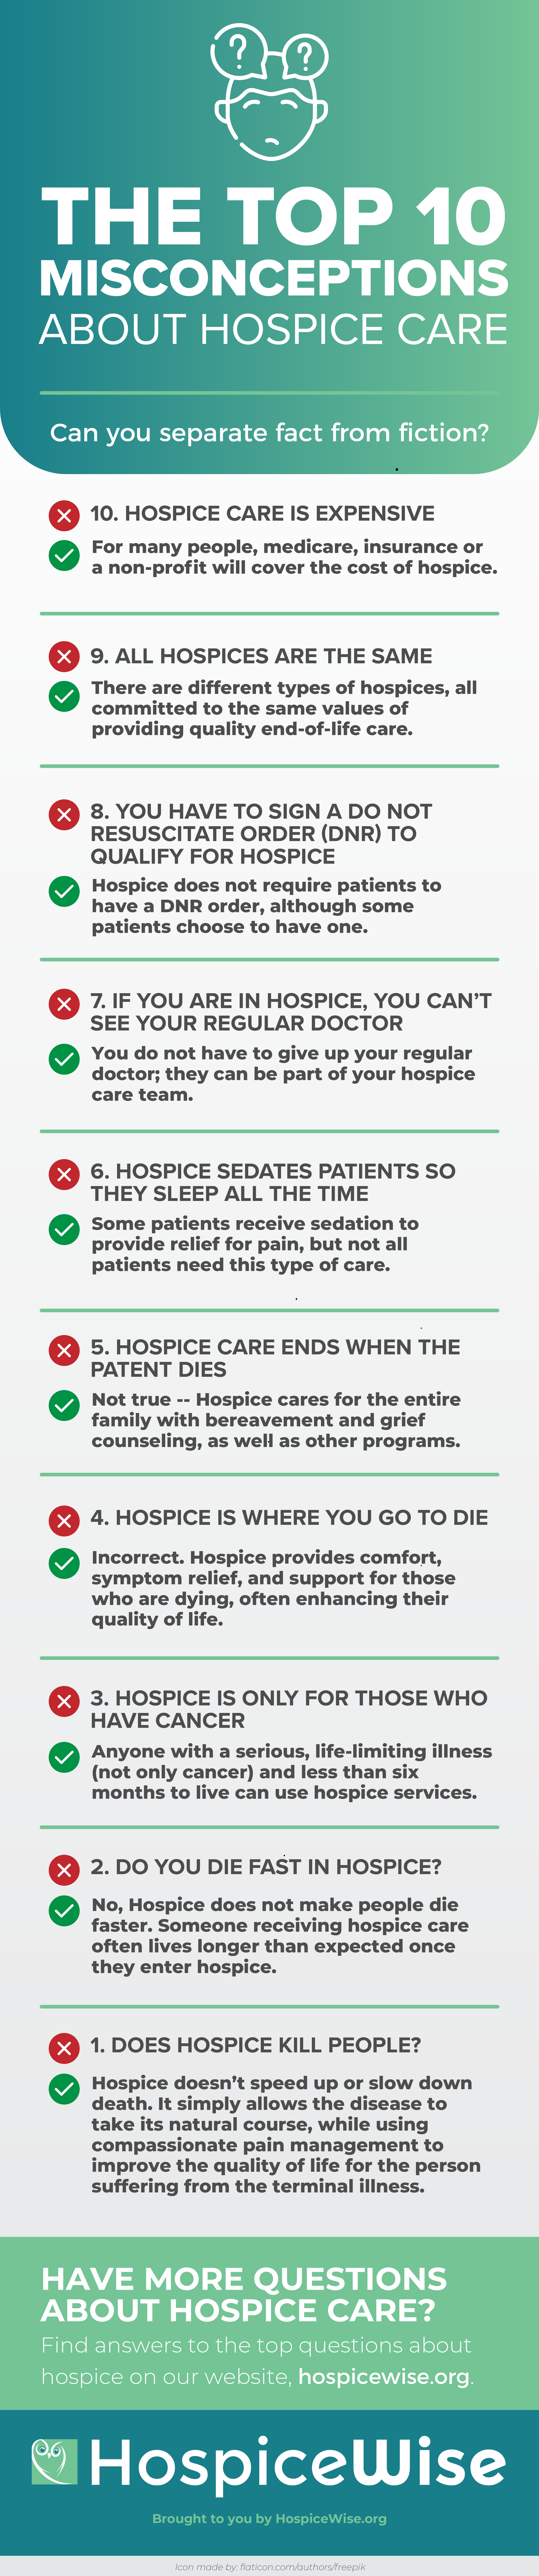 top 10 misconceptions about hospice care infographic